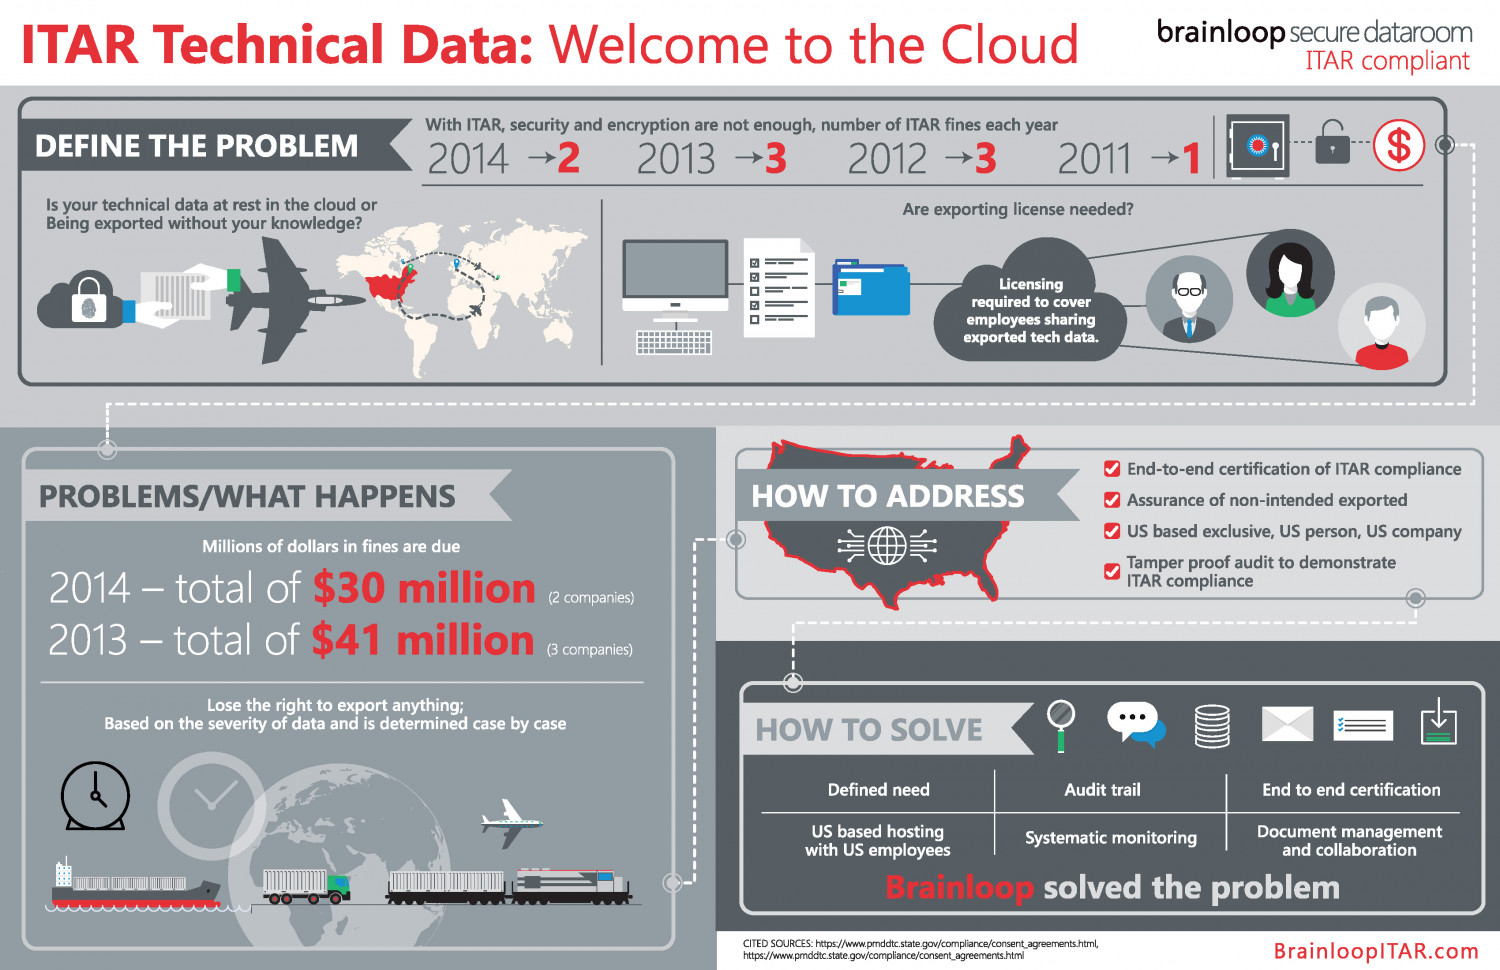 ITAR Technical Data: Welcome to the Cloud Infographic